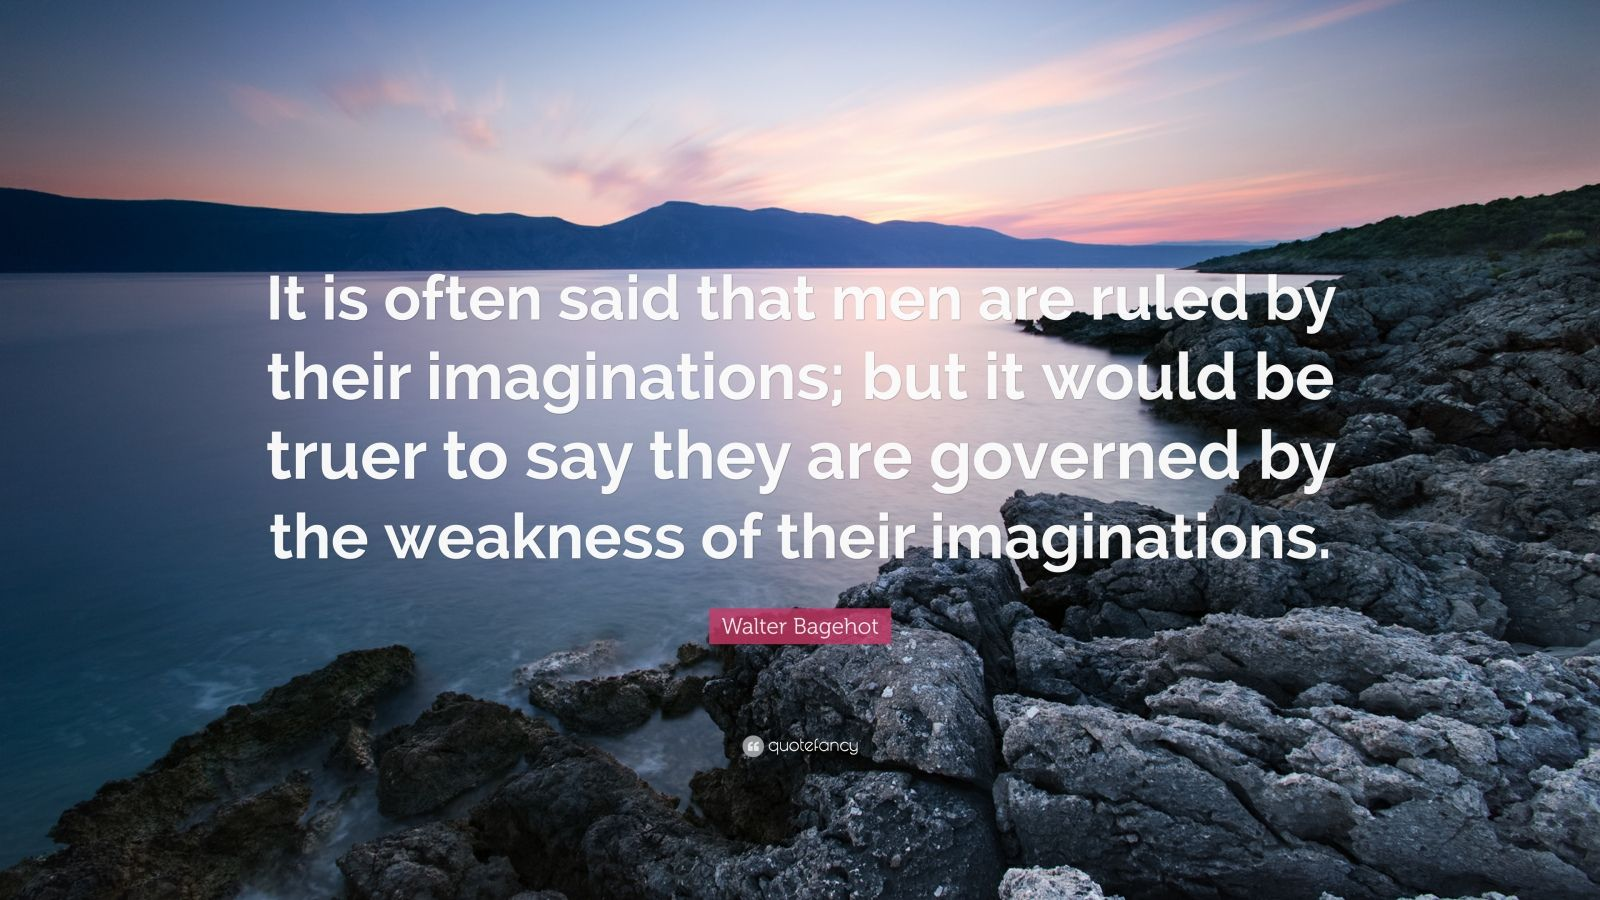 """Walter Bagehot Quote: """"It is often said that men are ruled by their imaginations; but it would be truer to say they are governed by the weakness of their imaginations."""""""